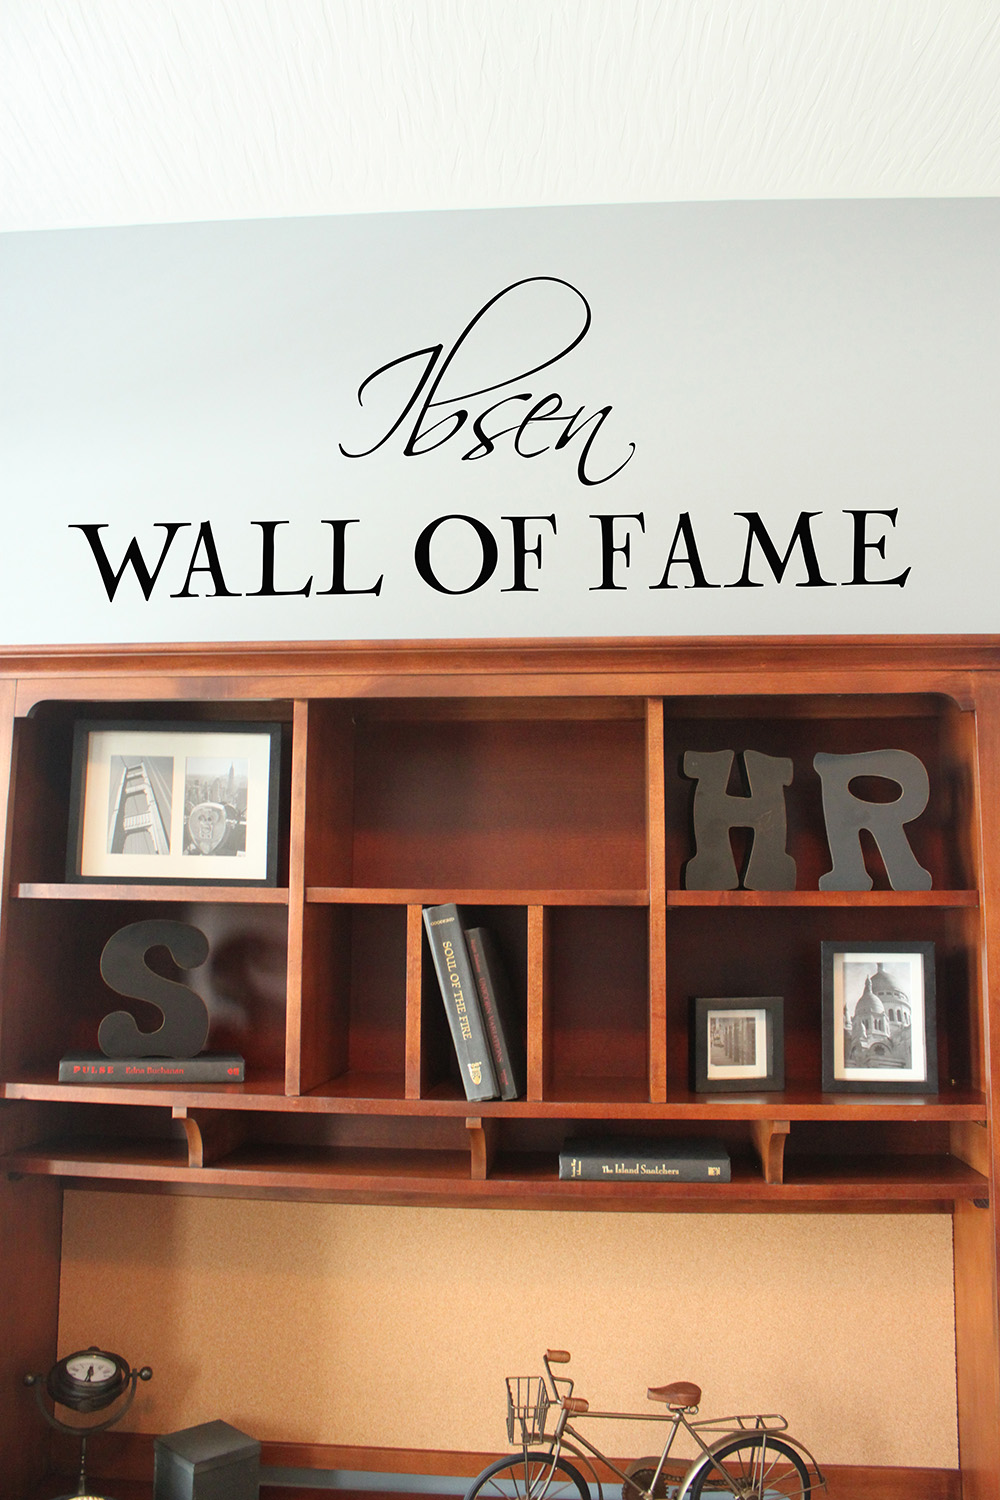 Script Name Wall Of Fame Wall Decal